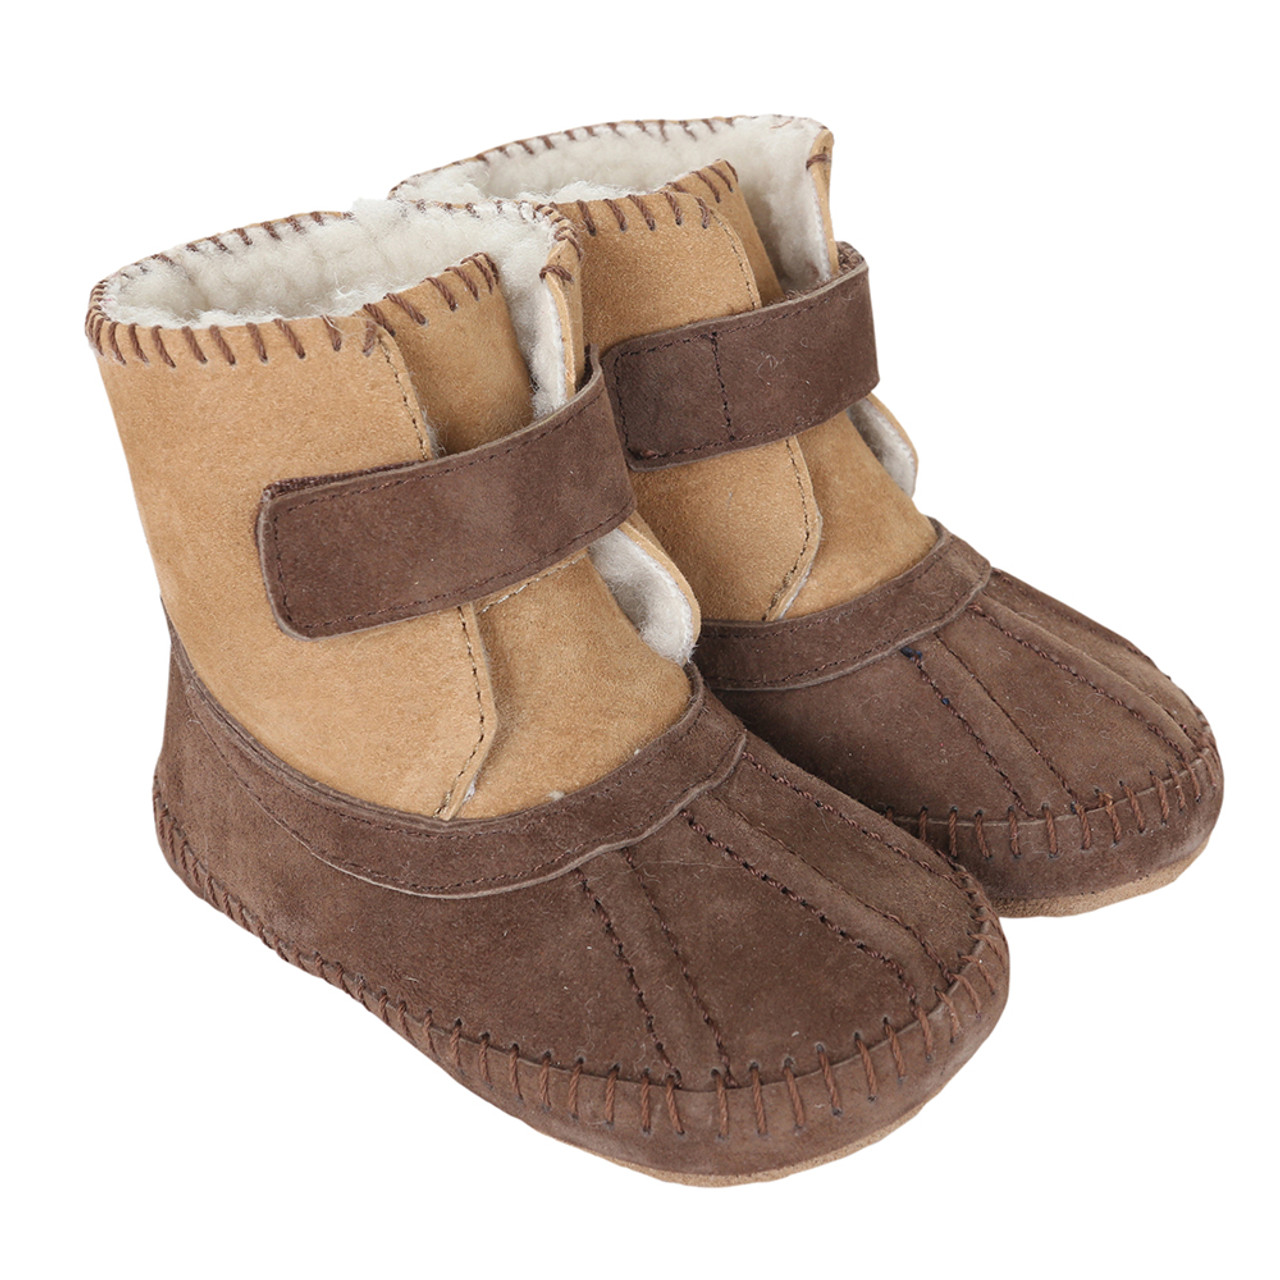 a69431ab73ffa Robeez Galway Cozy Boots Brown Soft Soles